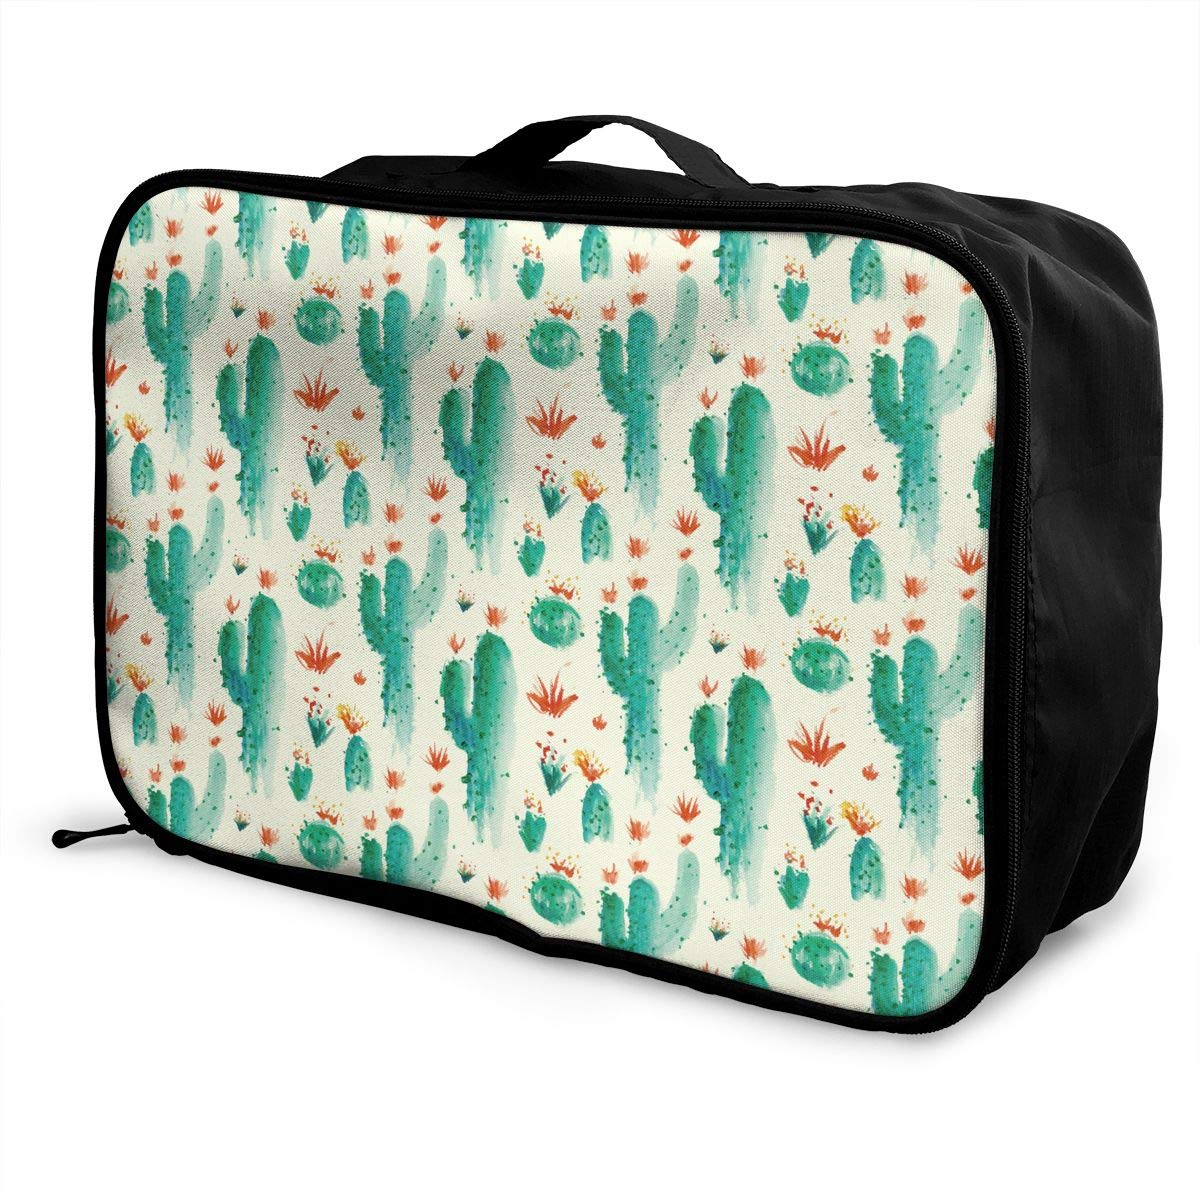 YueLJB Cactus Water Color Lightweight Large Capacity Portable Luggage Bag Travel Duffel Bag Storage Carry Luggage Duffle Tote Bag